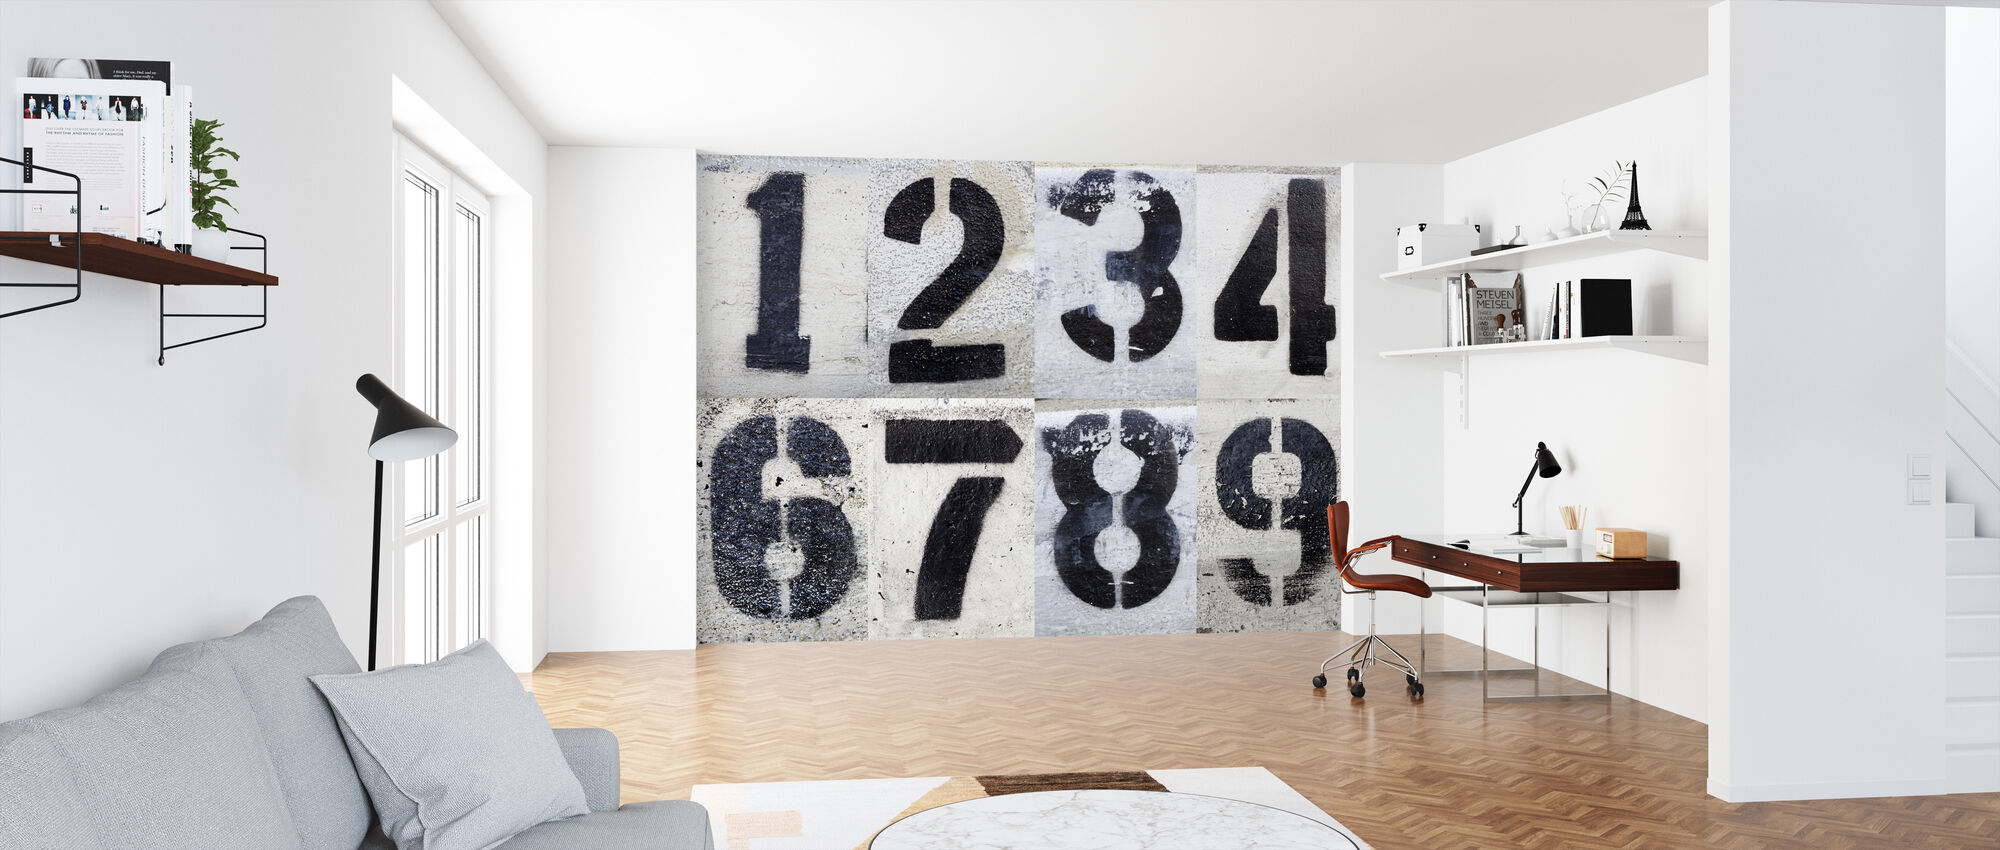 Painted by Numbers - Wallpaper - Office